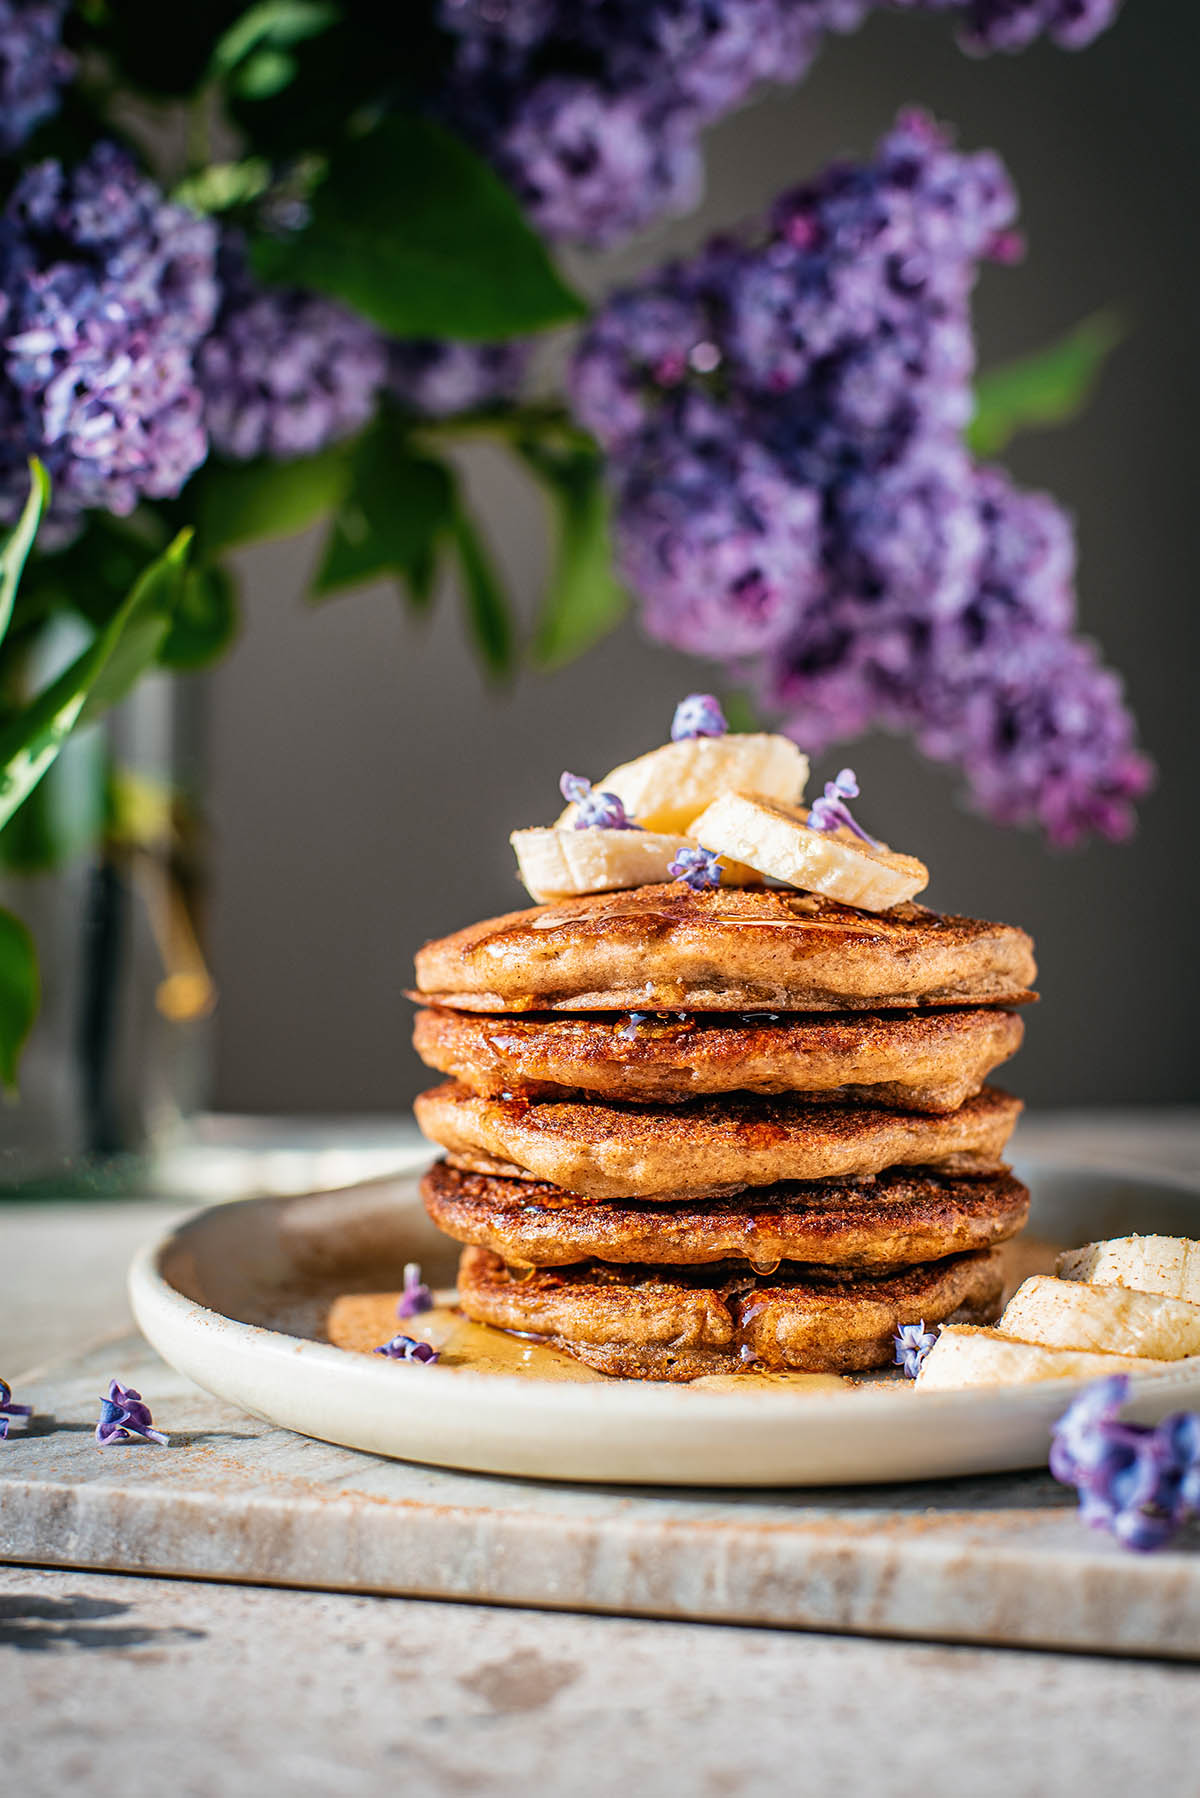 Stack of gluten free banana pancakes topped with bananas and lilac blossoms.